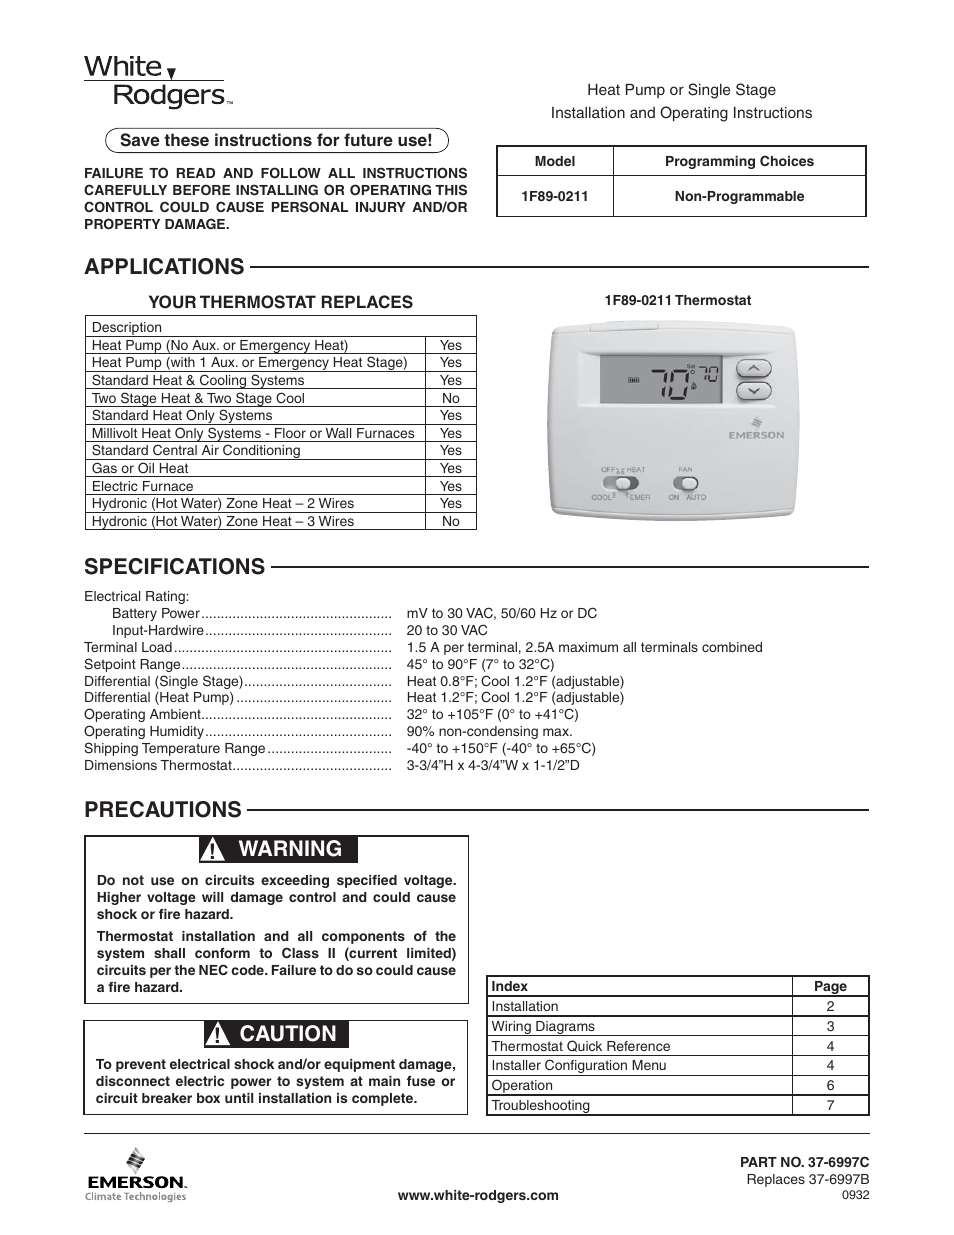 White Rodgers BLUE 2 1F89-0211 User Manual | 16 pages